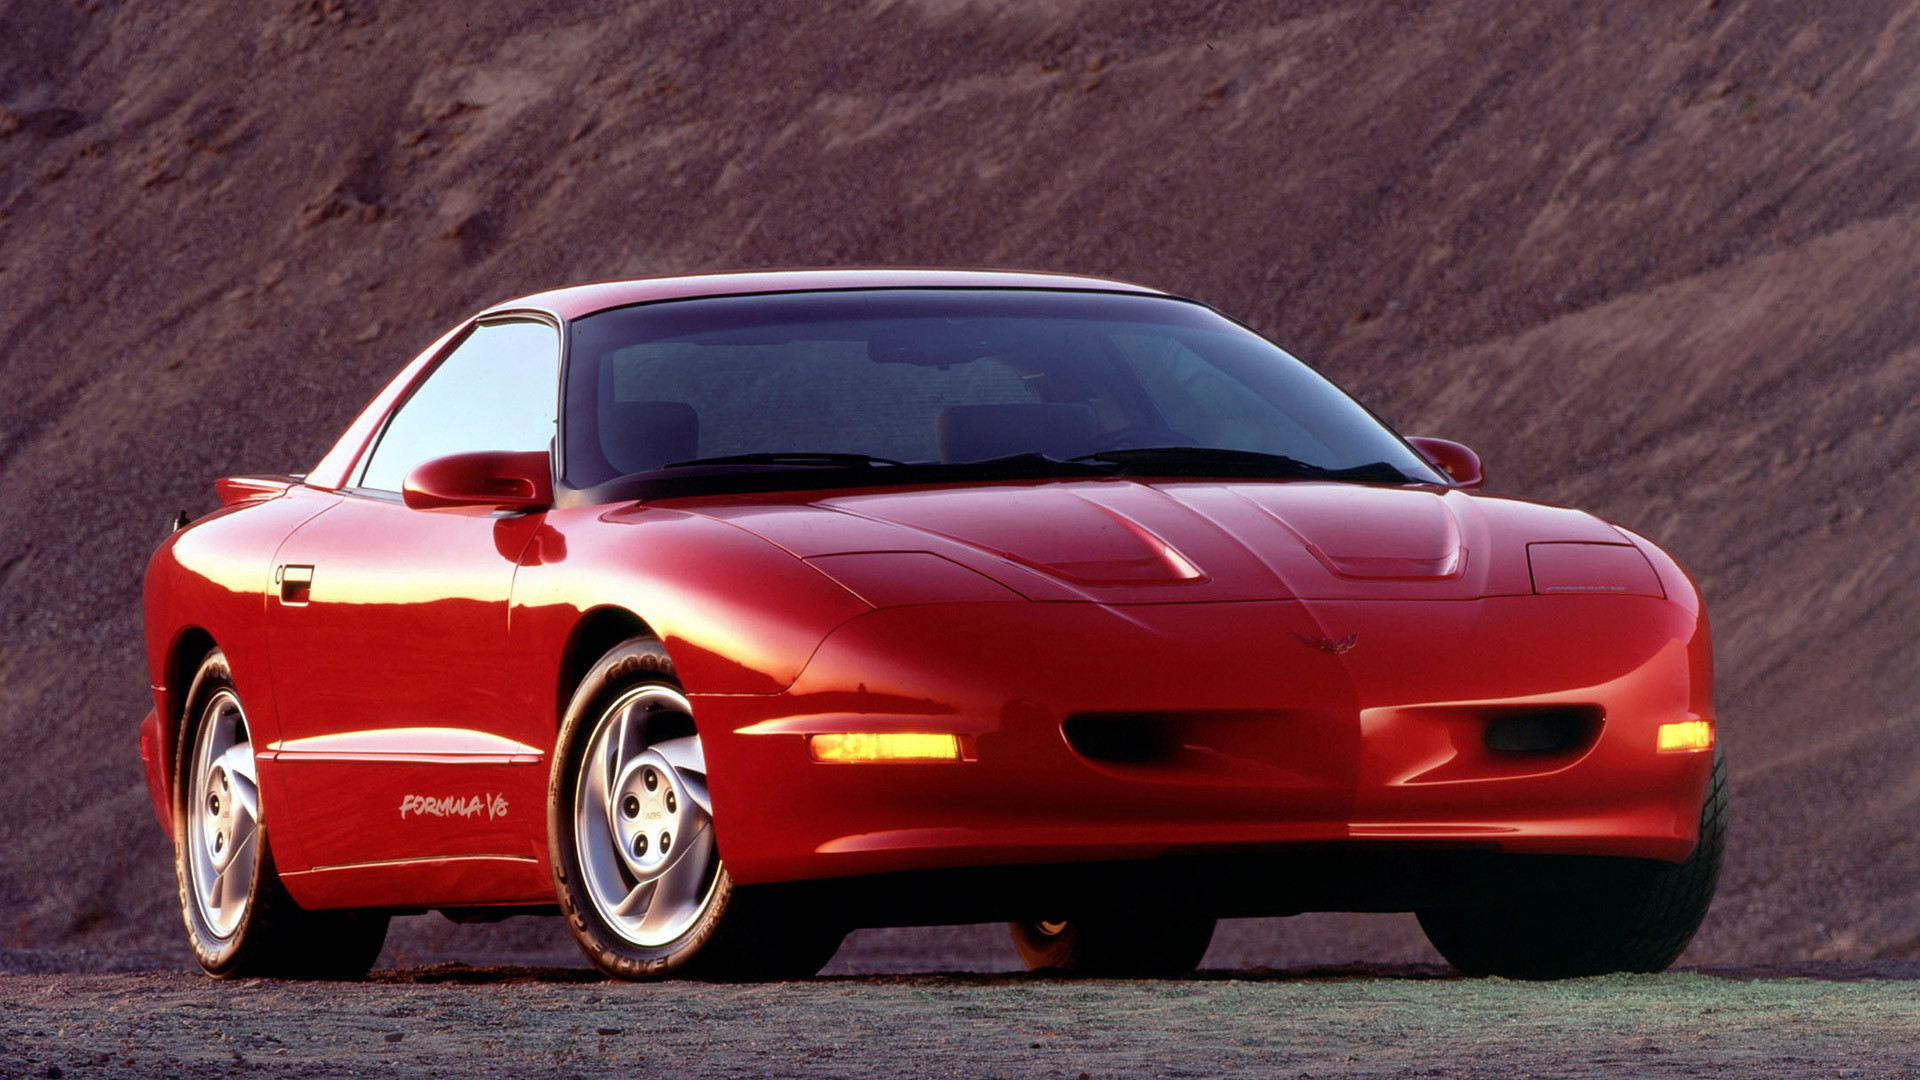 1920x1080 Pontiac Firebird Wallpaper 12 - 1920 X 1080